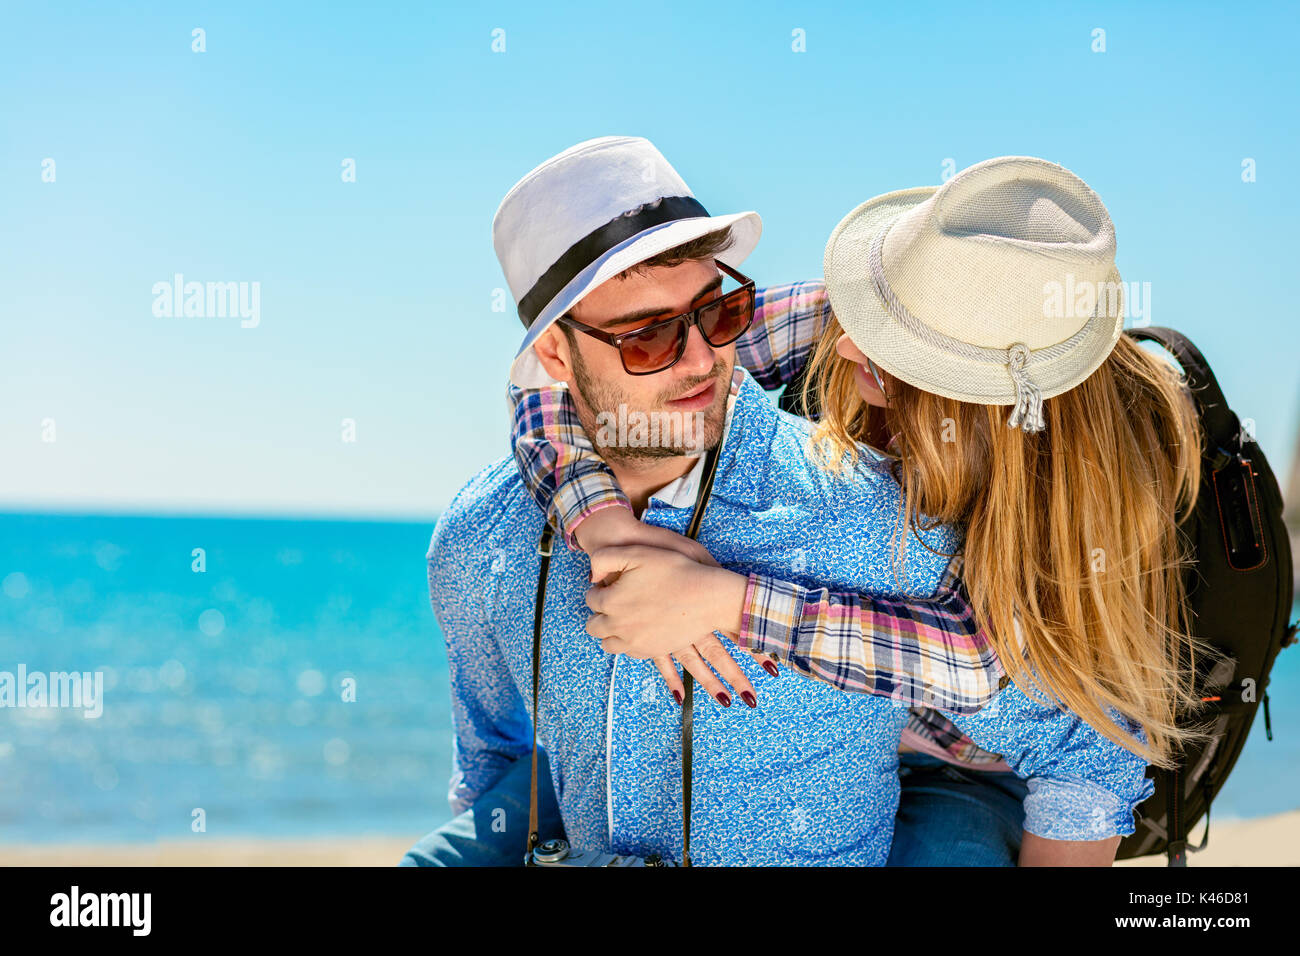 Happy man carrying his girlfriend on a piggyback ride both smiling and looking very happy enjoying their vacation - Stock Image